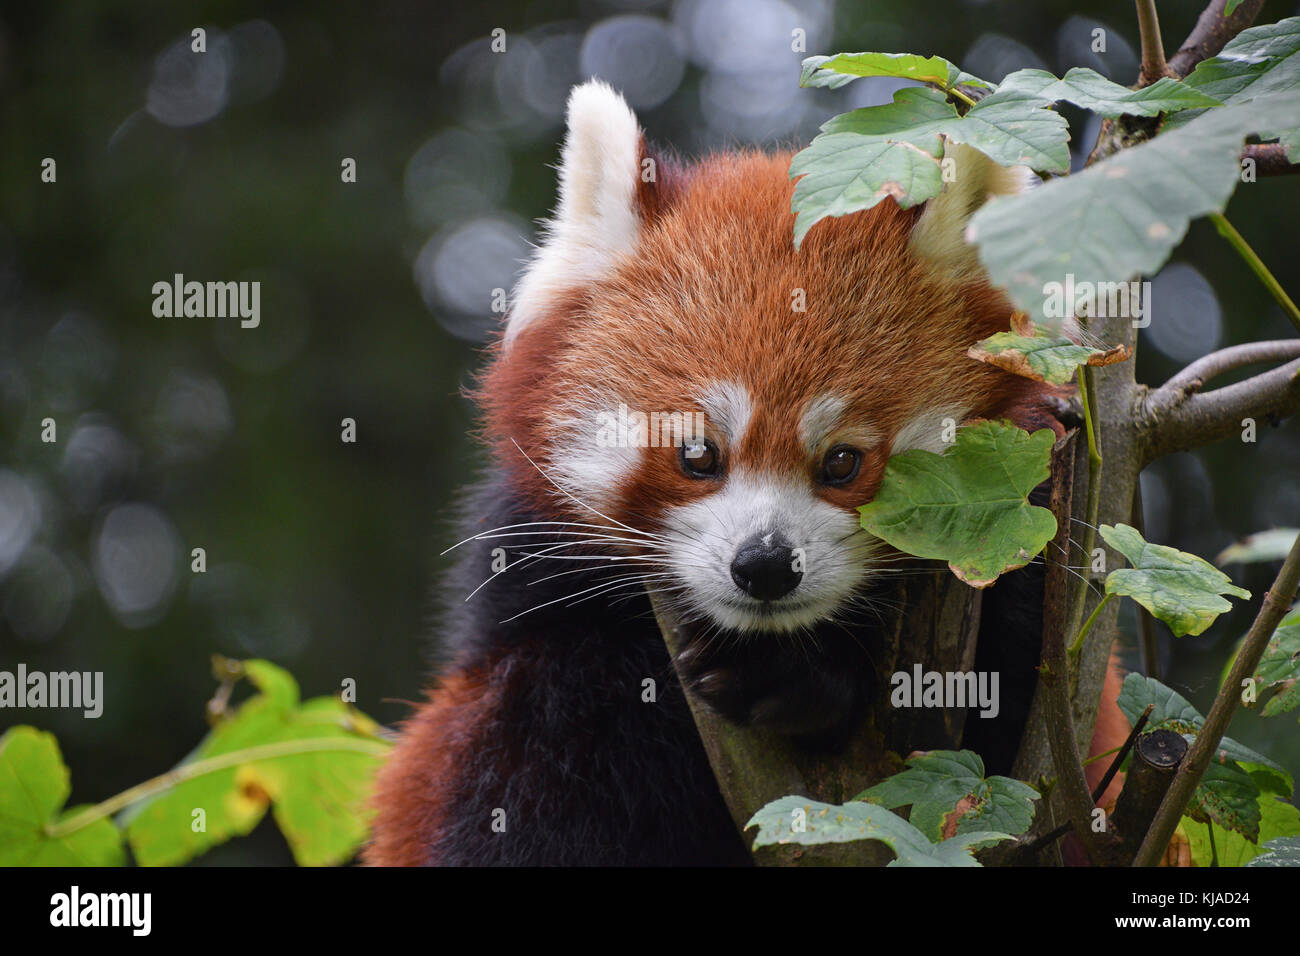 Close up portrait of one cute red panda on green tree, looking at camera, low angle view - Stock Image